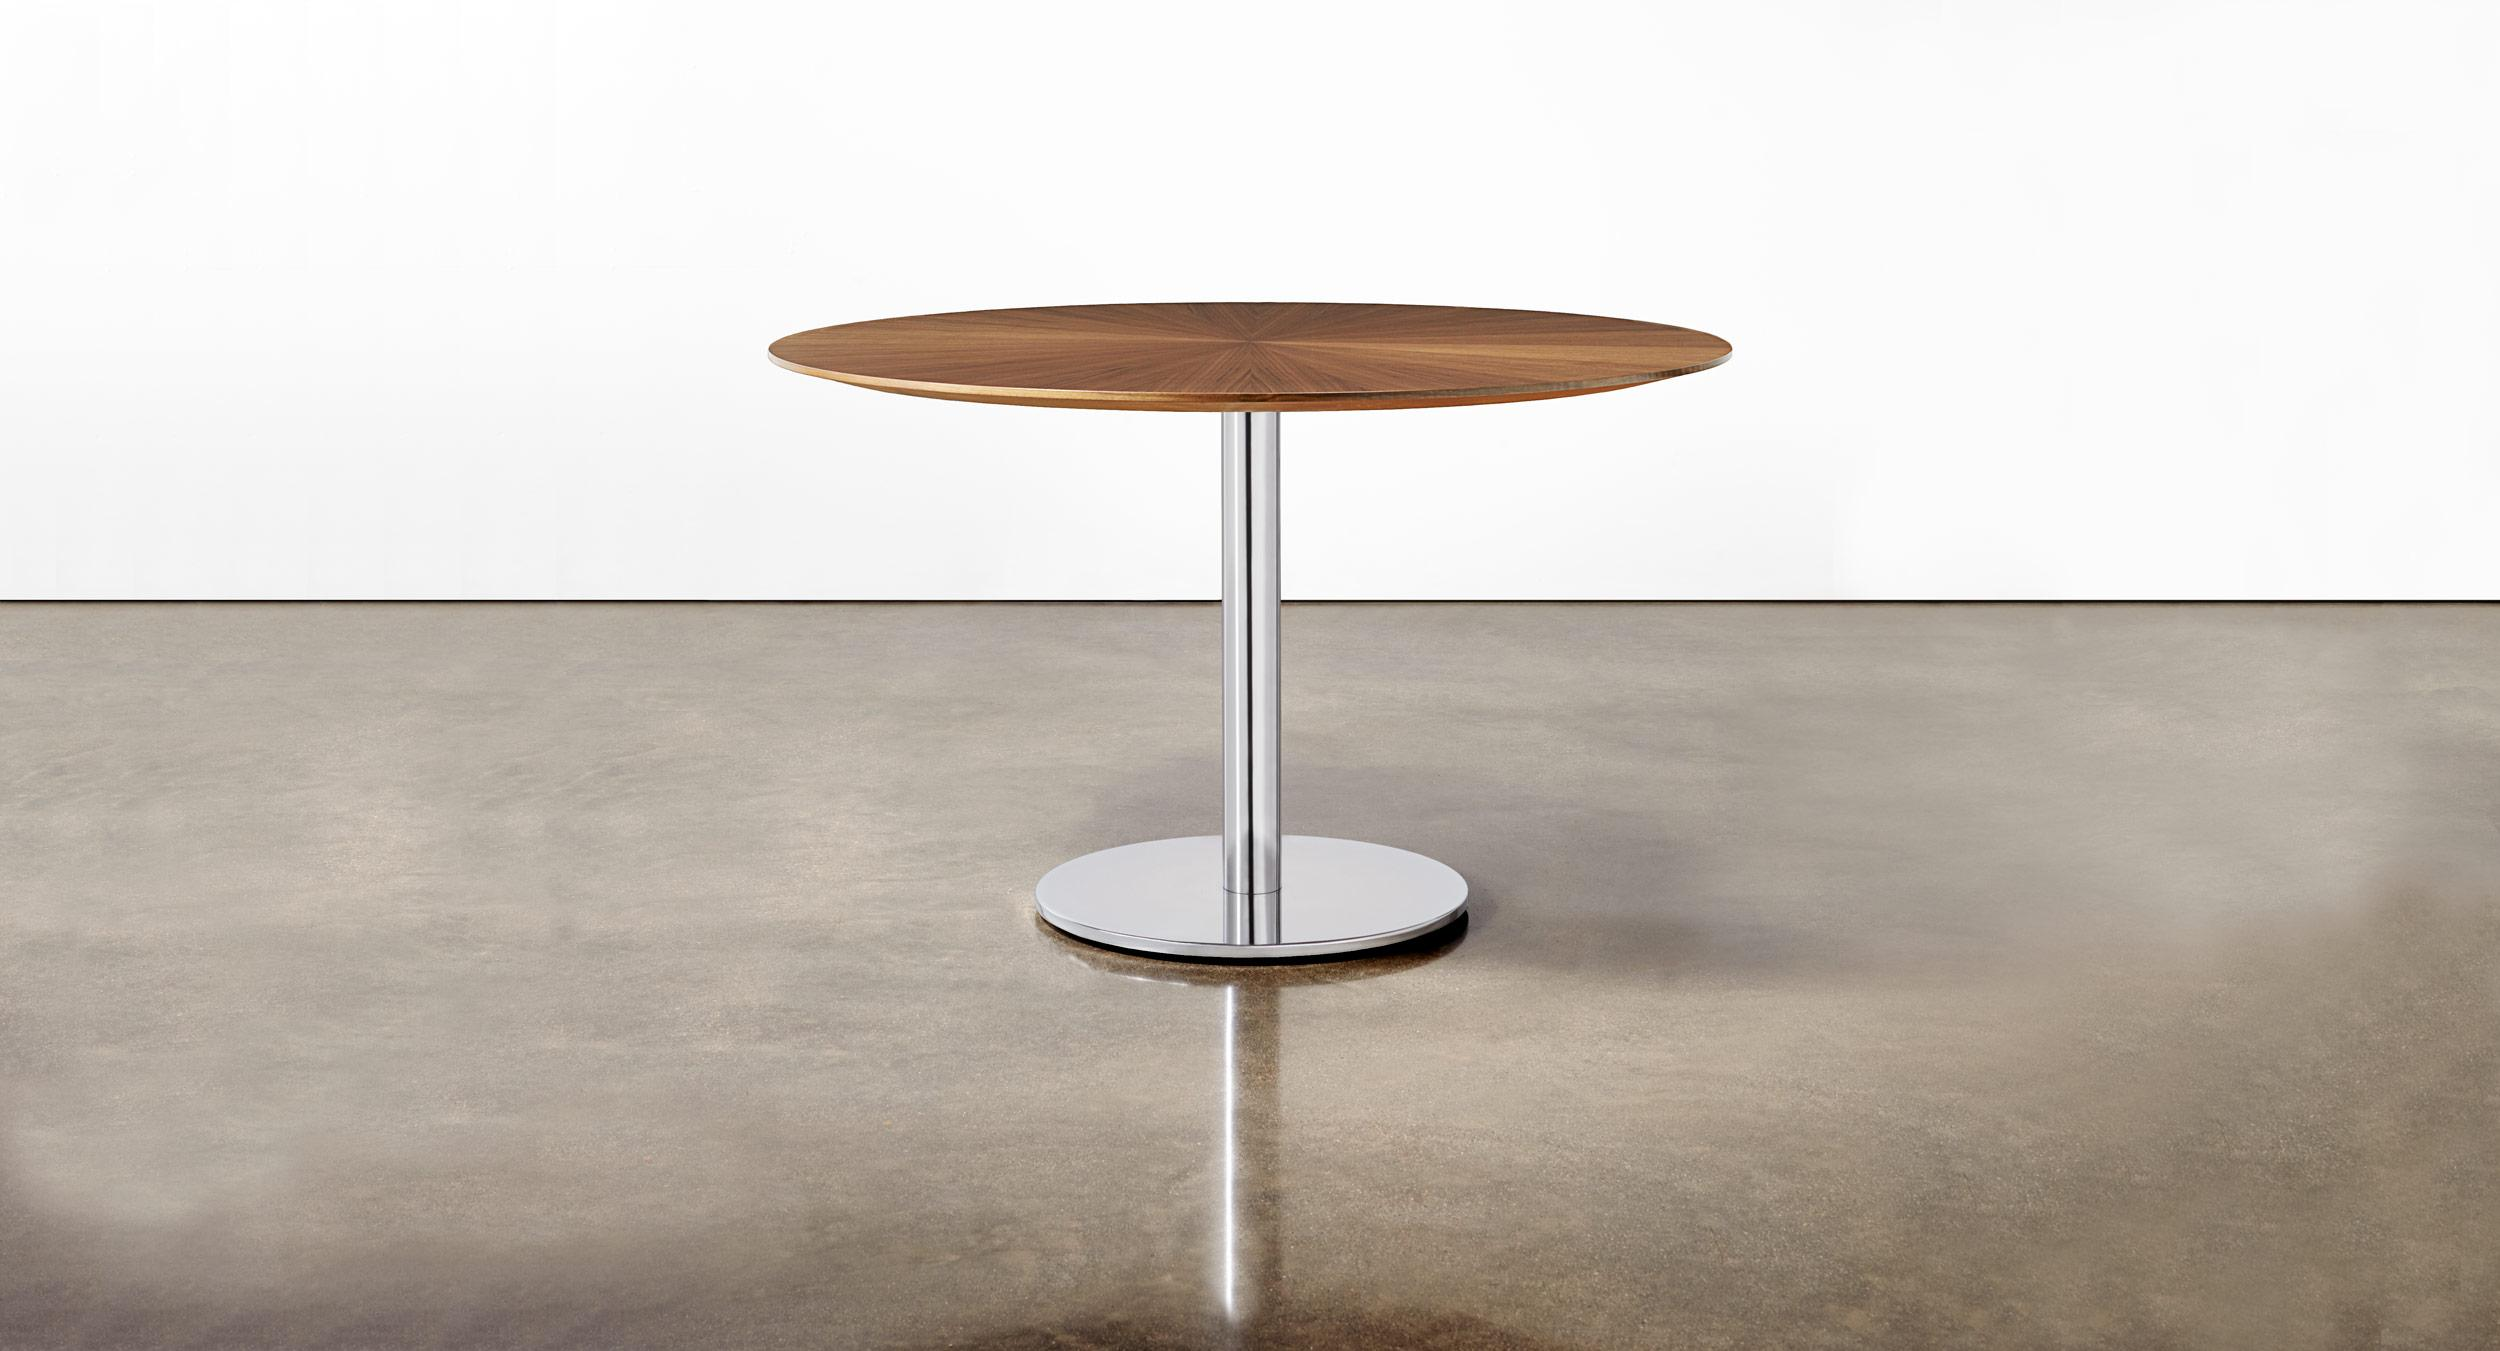 Merveilleux Sunburst Veneer Table With Disc Base